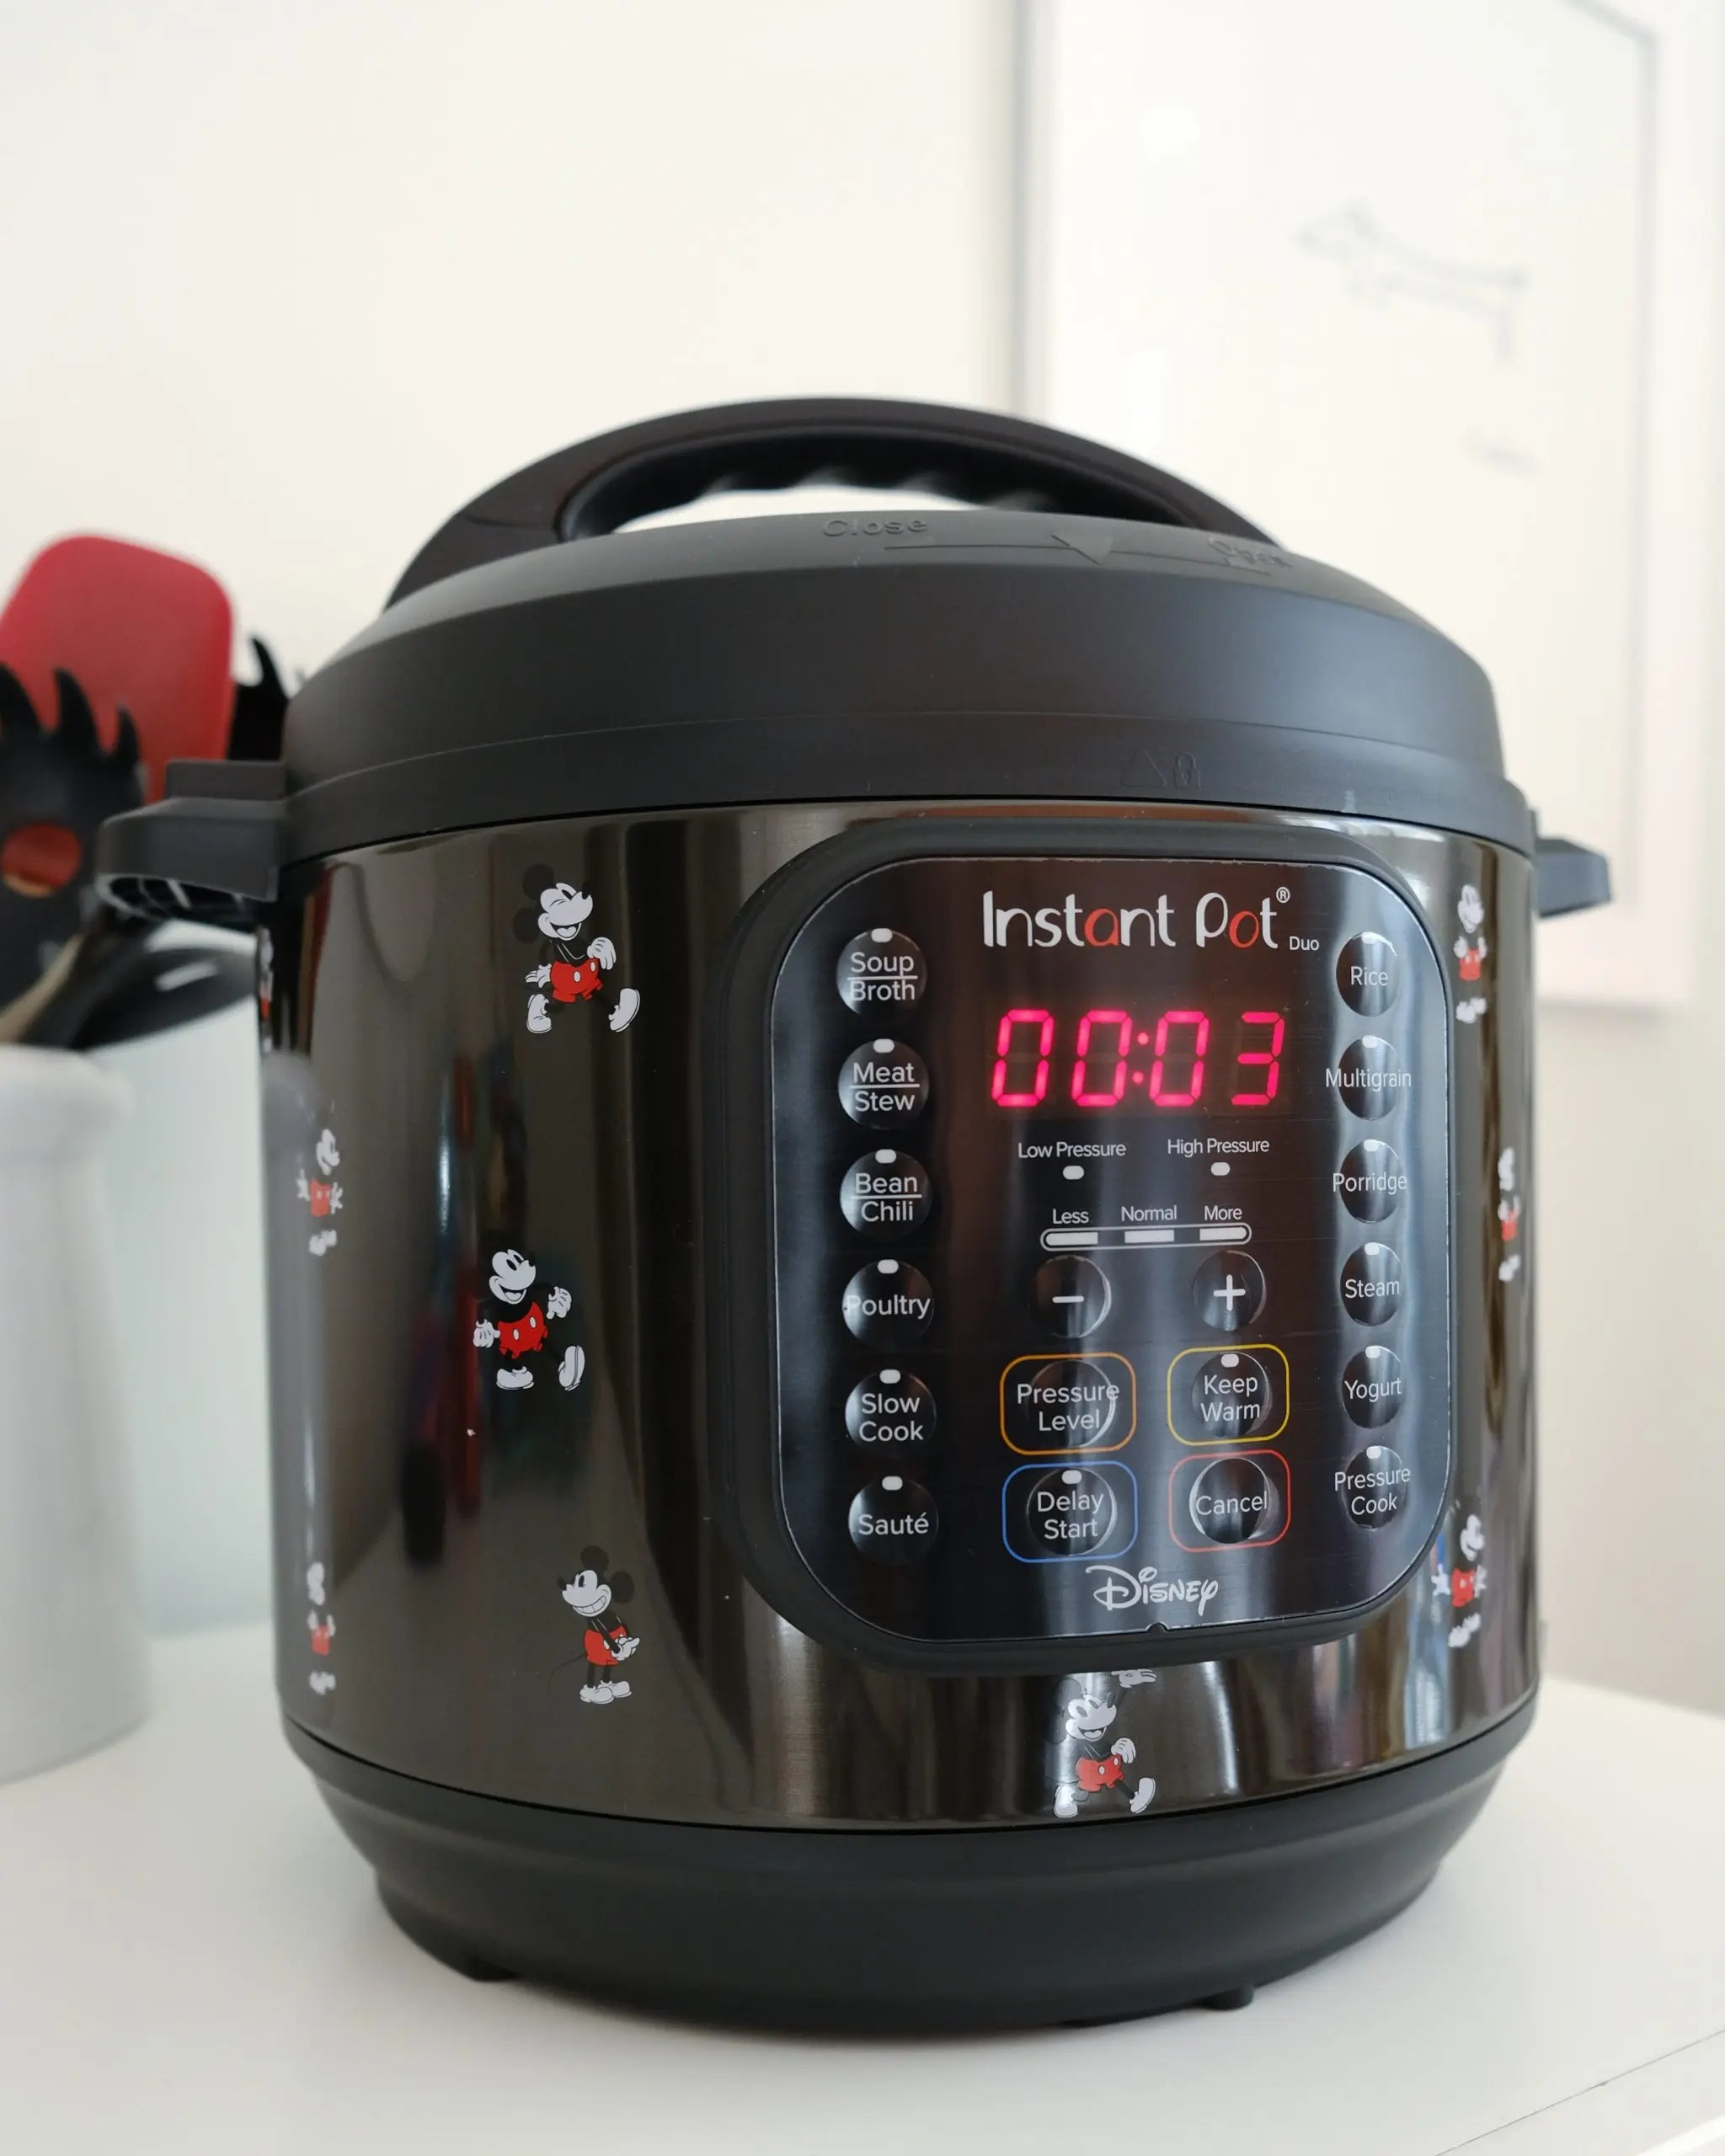 Instant Pot Duo 6-Quart Mickey Mouse Classic 7-in-1 Multi-Use Programmable Pressure Cooker